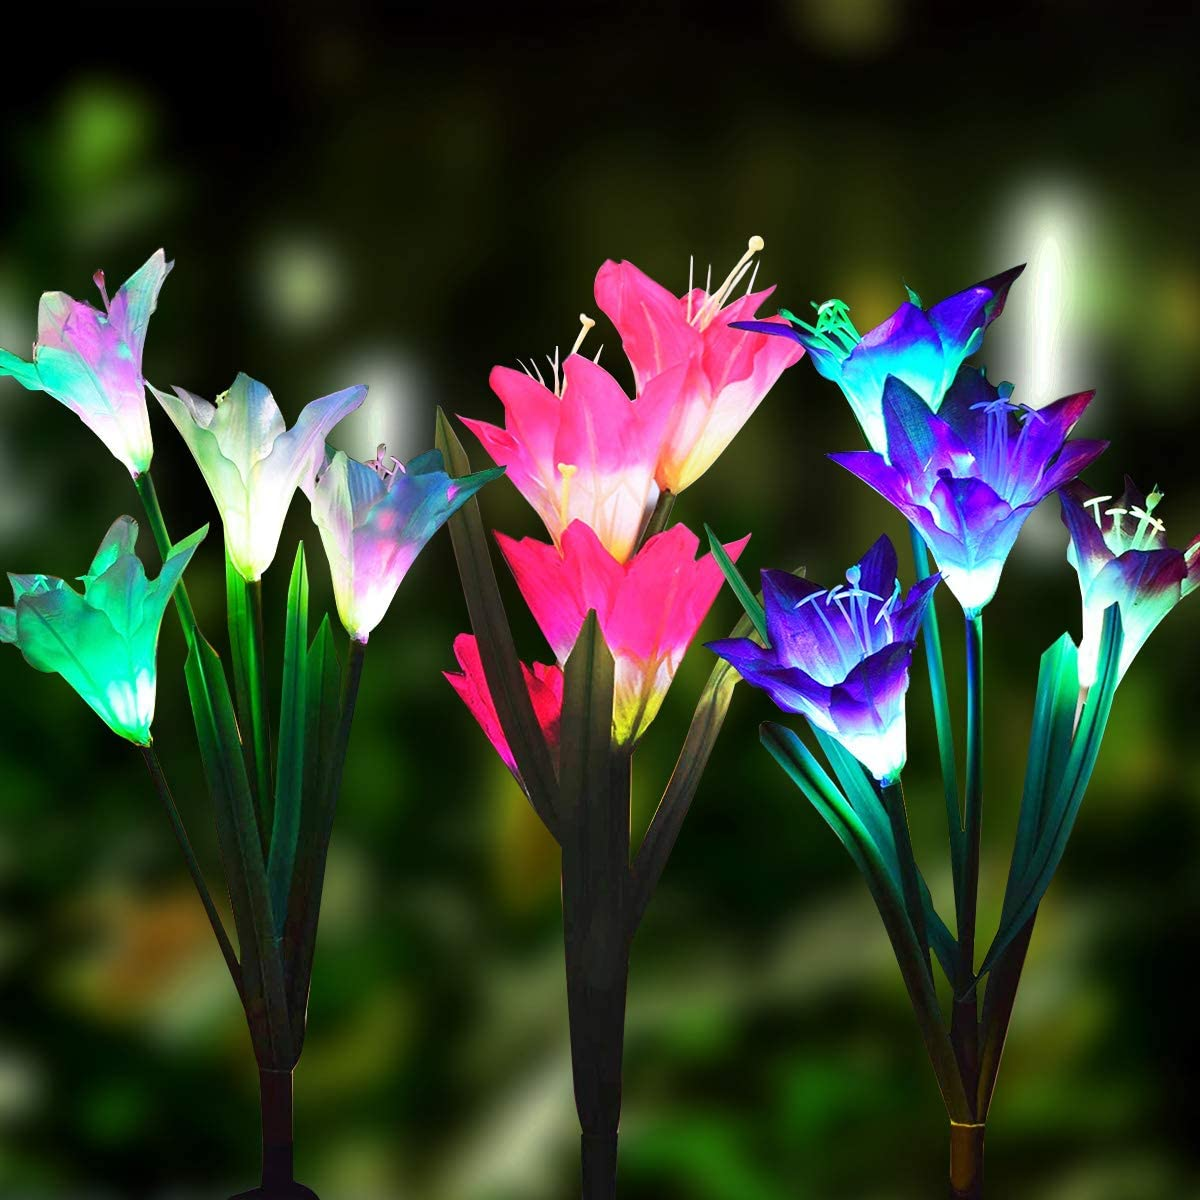 Solar Flower Lights Outdoor 3 Max 53% OFF with Pack Led Powered service